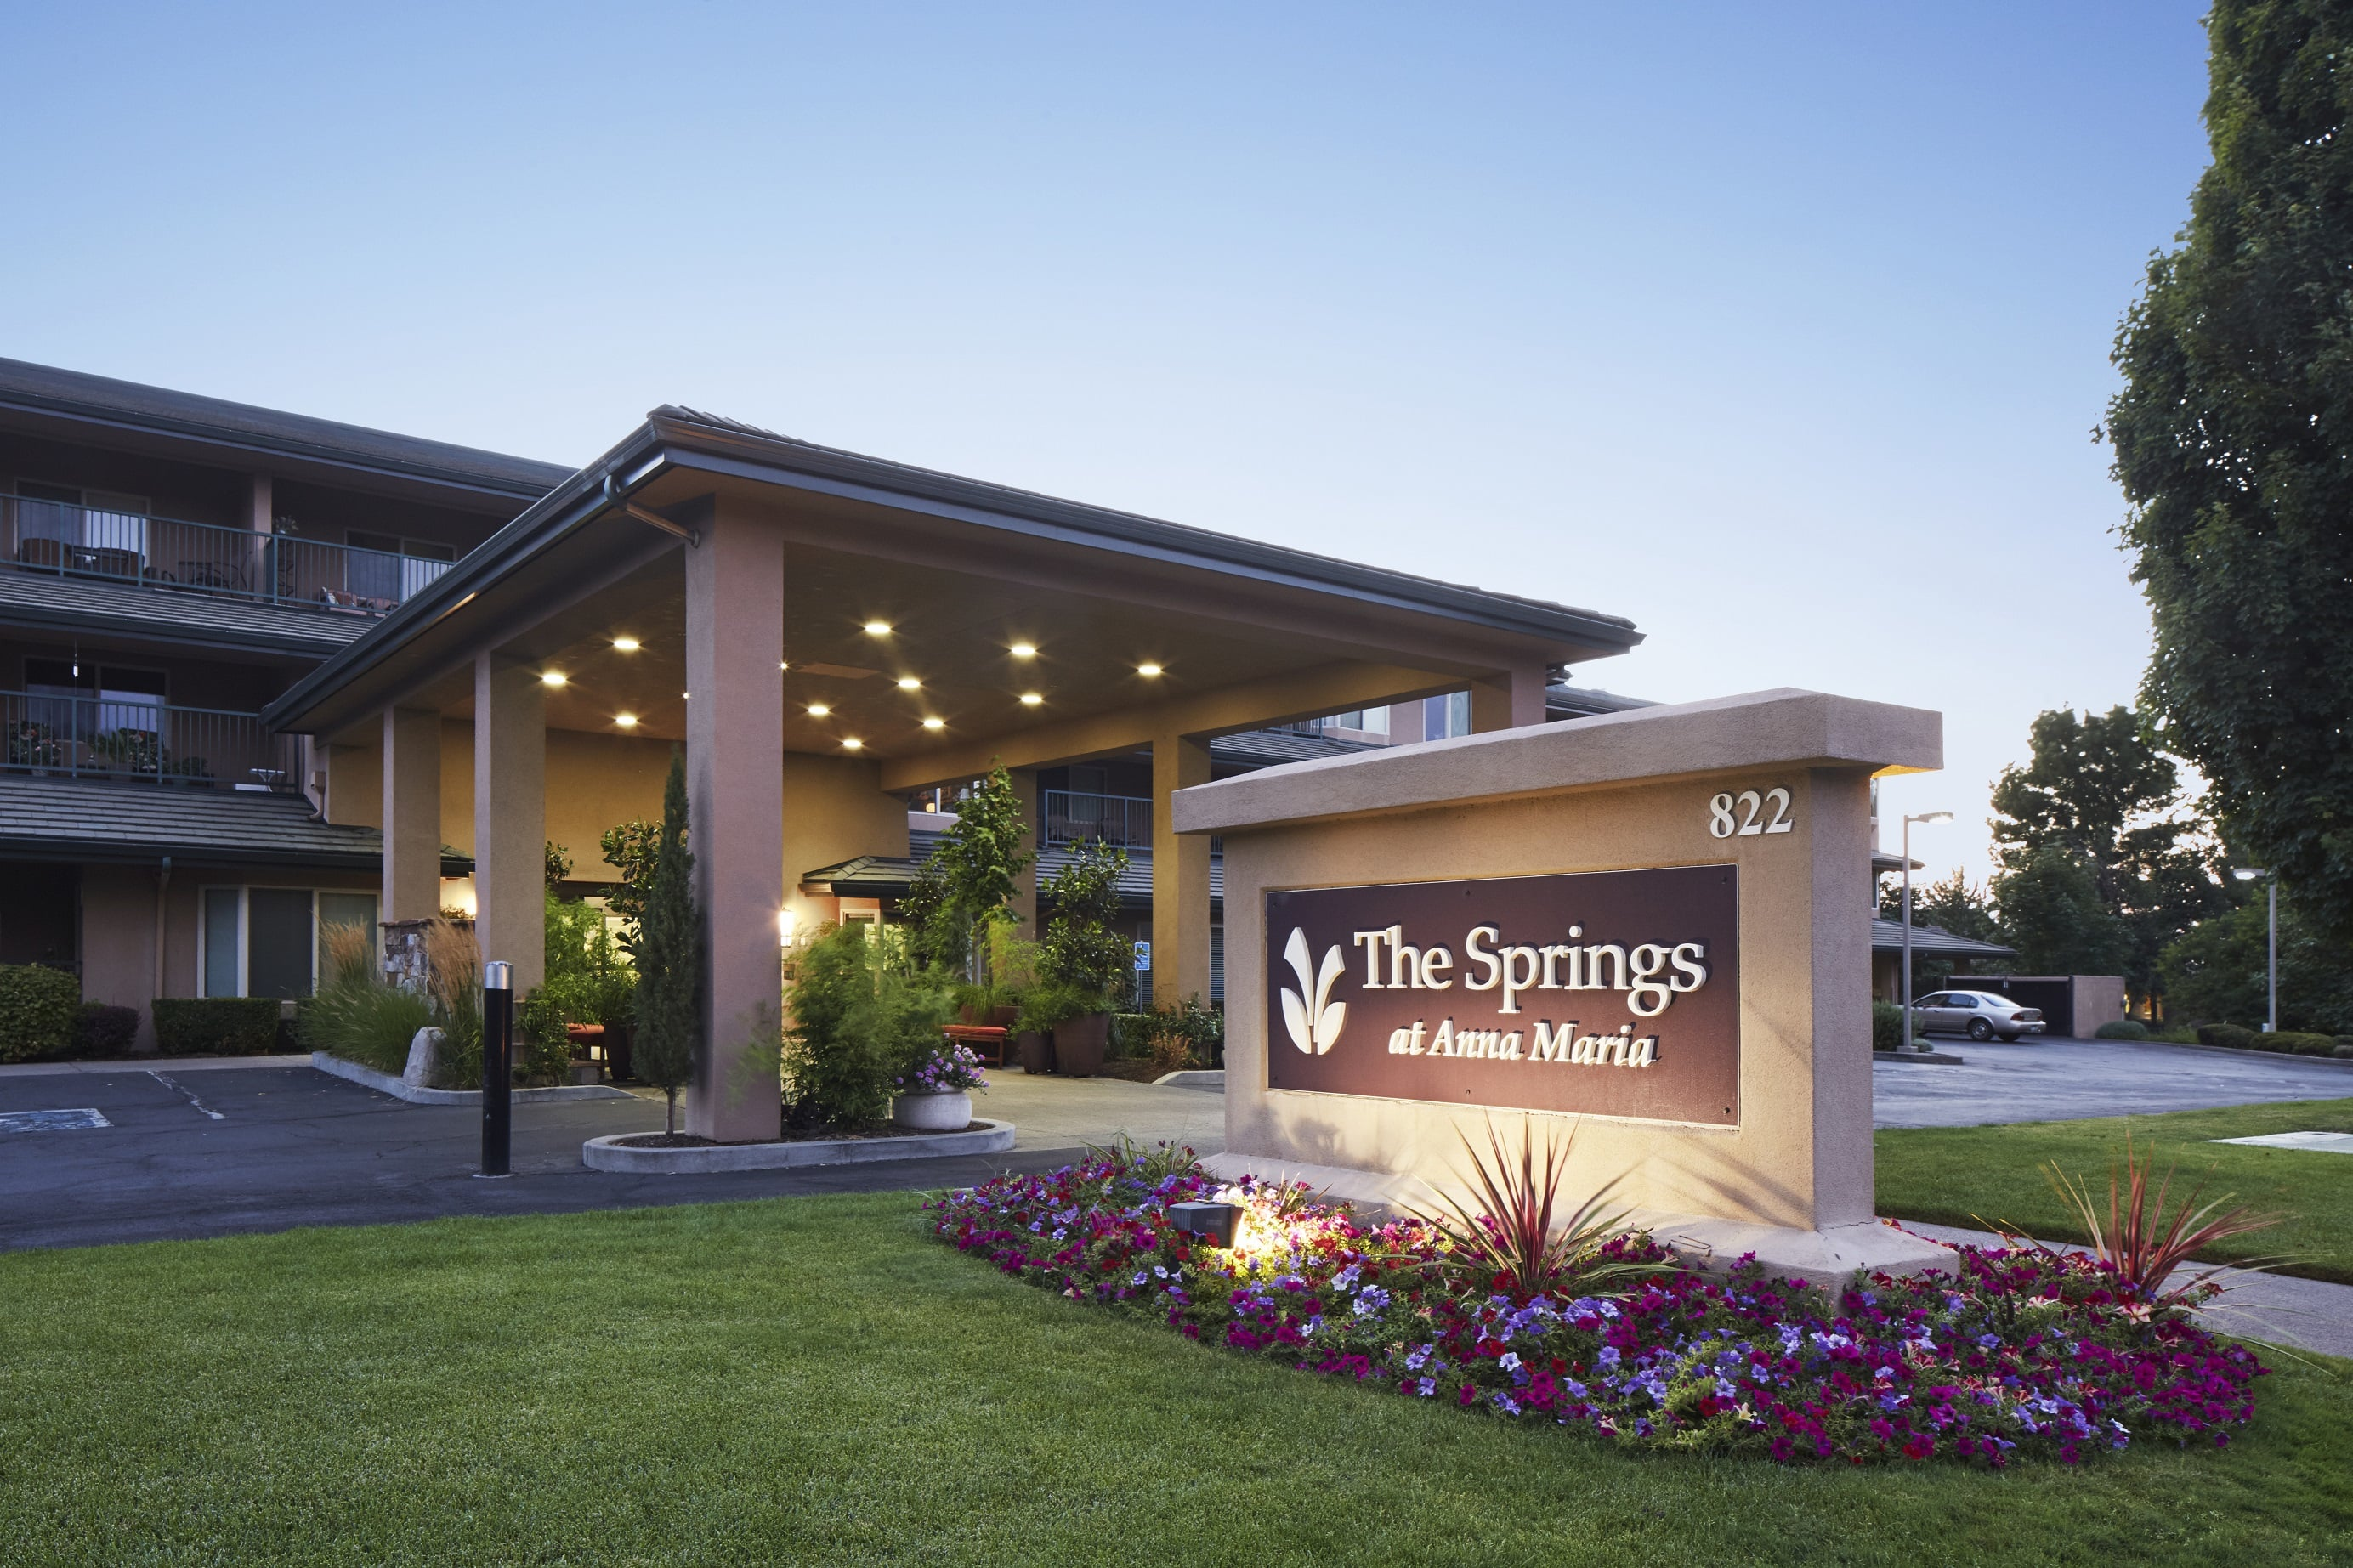 Beautiful exterior of senior living facility in Medford